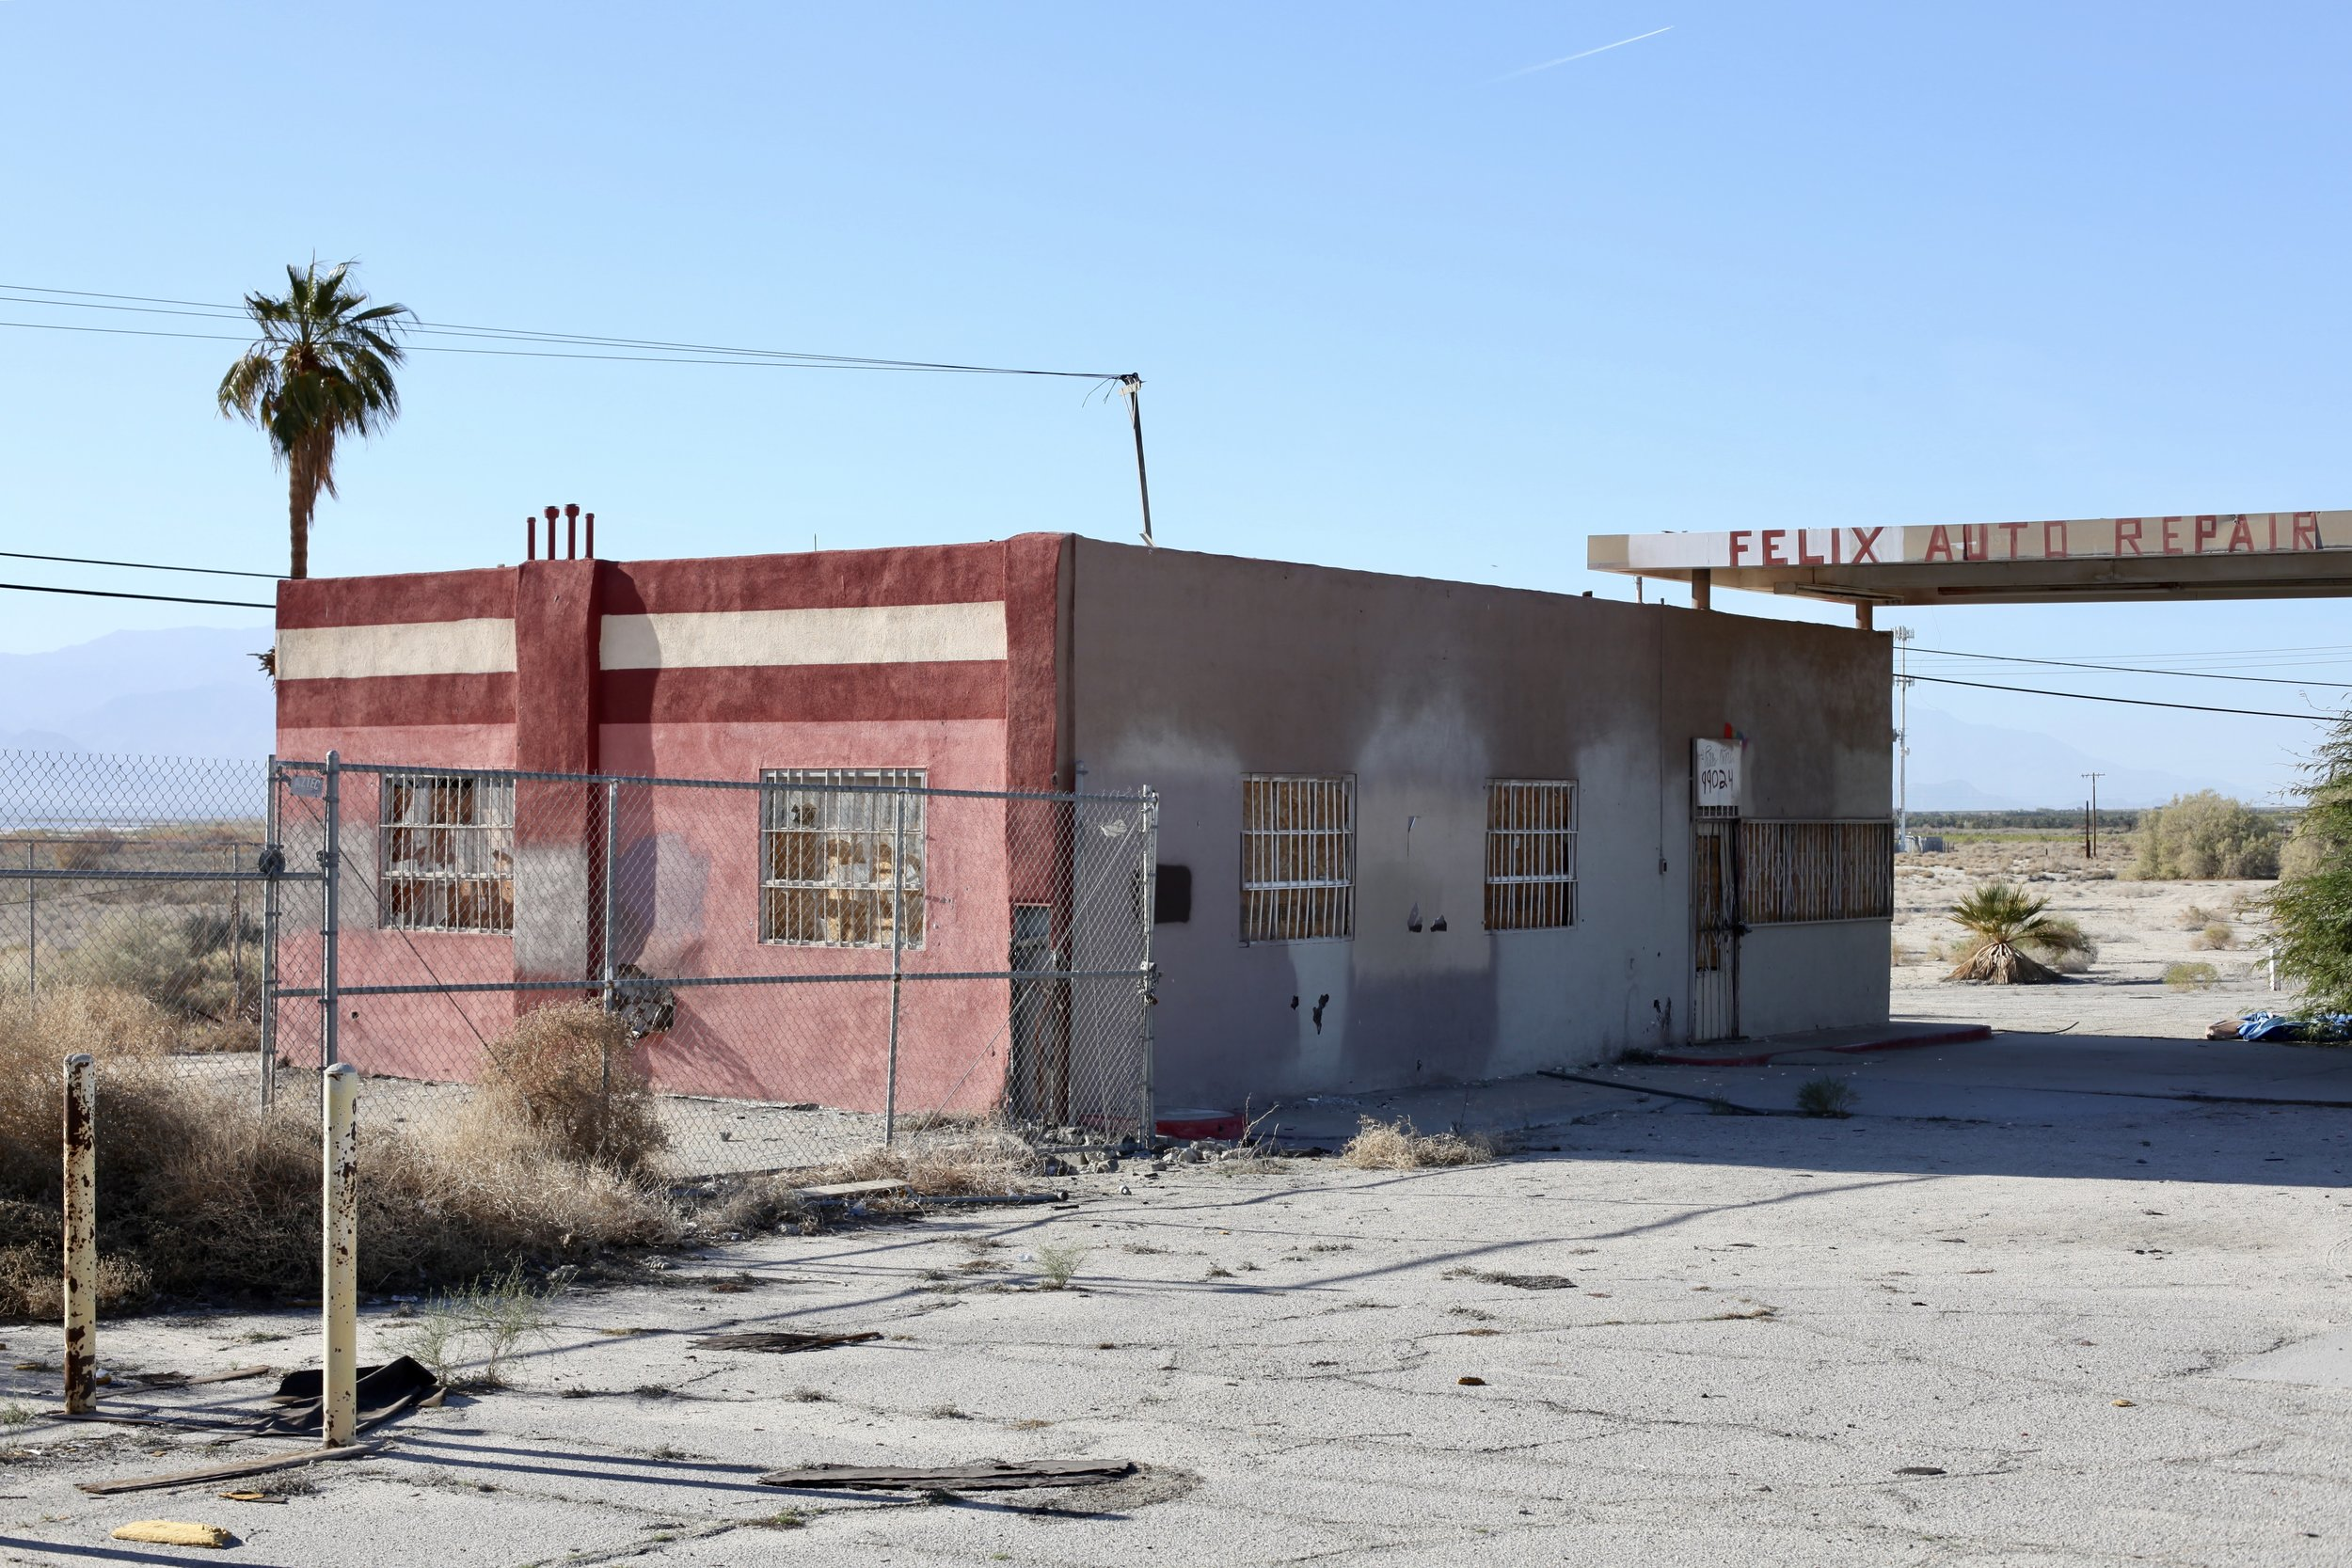 Felix Auto Repair sits abandoned near Skip's Liquor in North Shore, Calif. on Jan. 6, 2017.(Photo by Ethan Jakob Craft.)